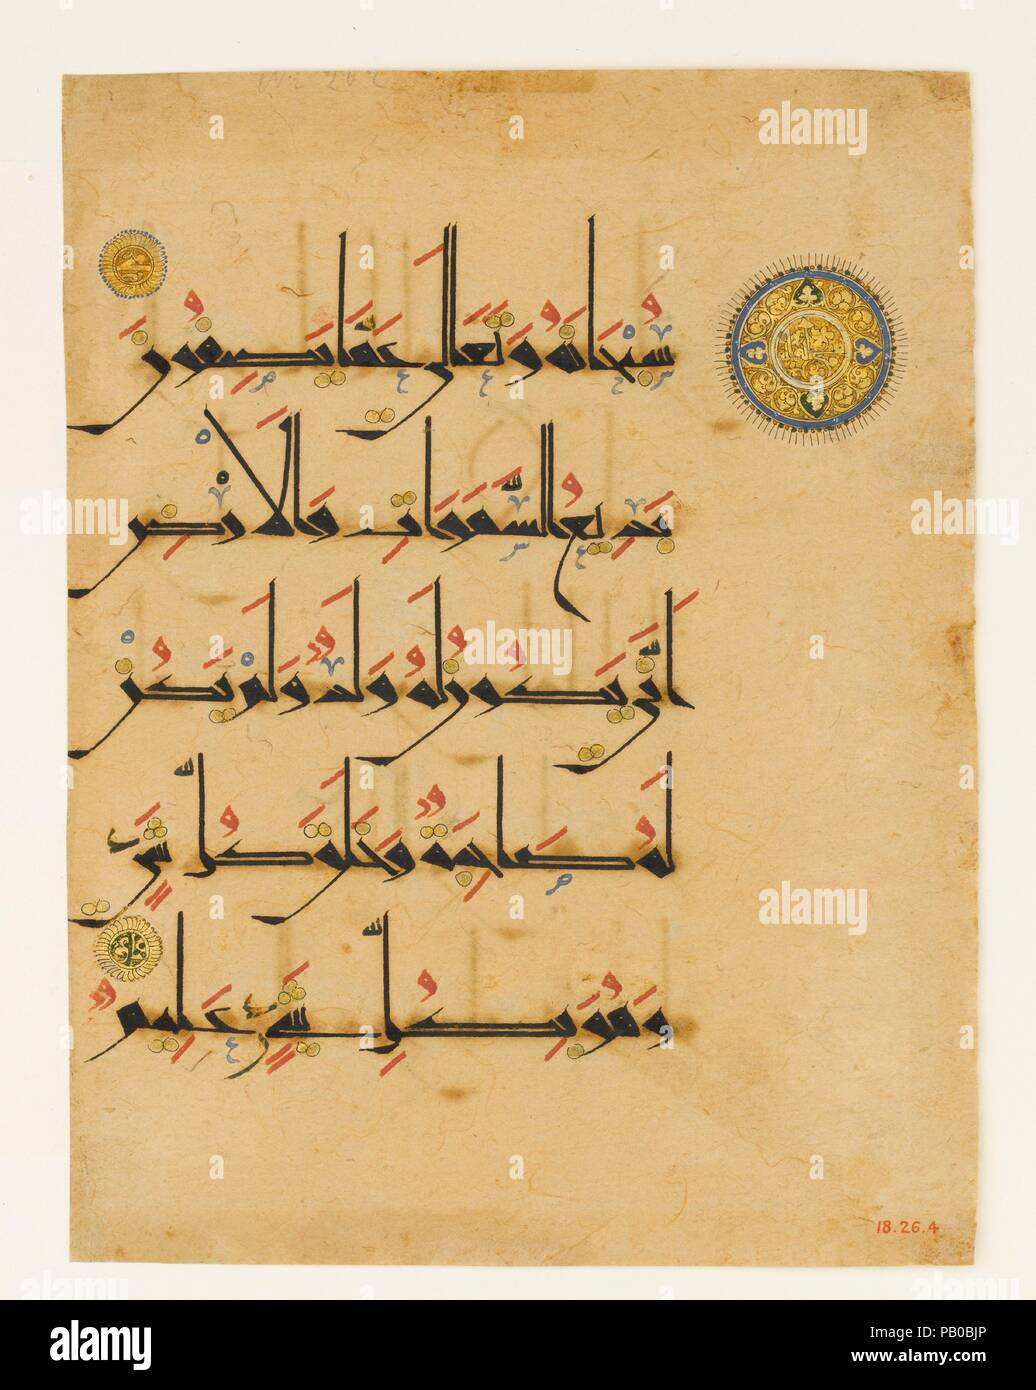 10 In Cm Folio From A Qur An Manuscript Dimensions H 10 In 25 4 Cm W